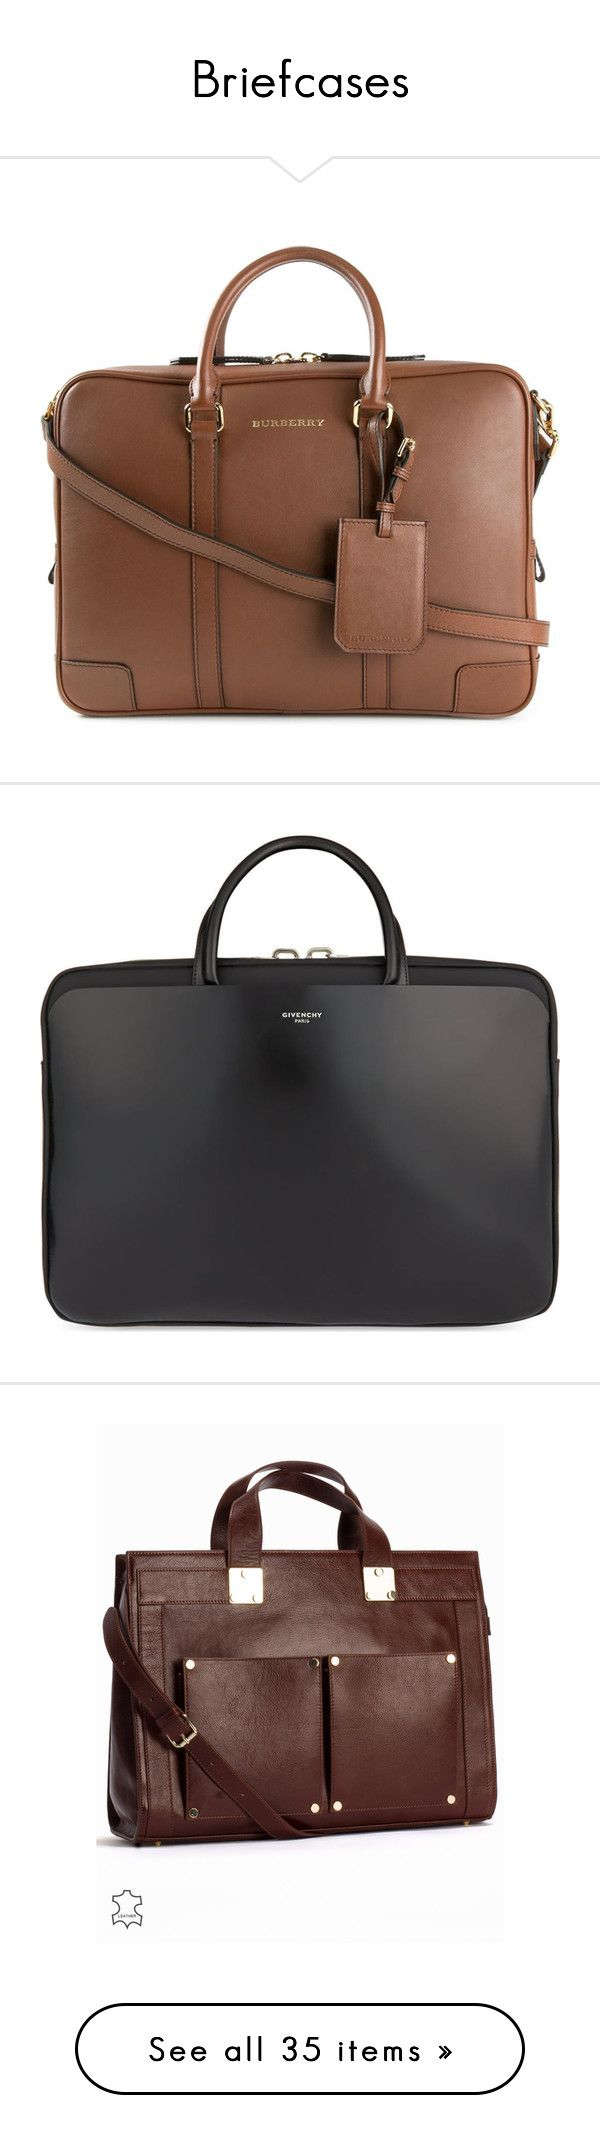 Briefcases by mon-ami-louis on Polyvore featuring bags, briefcases, briefcase, brown, briefcases and attachés, handbags and purses, black, accessories, cognac and womens-fashion